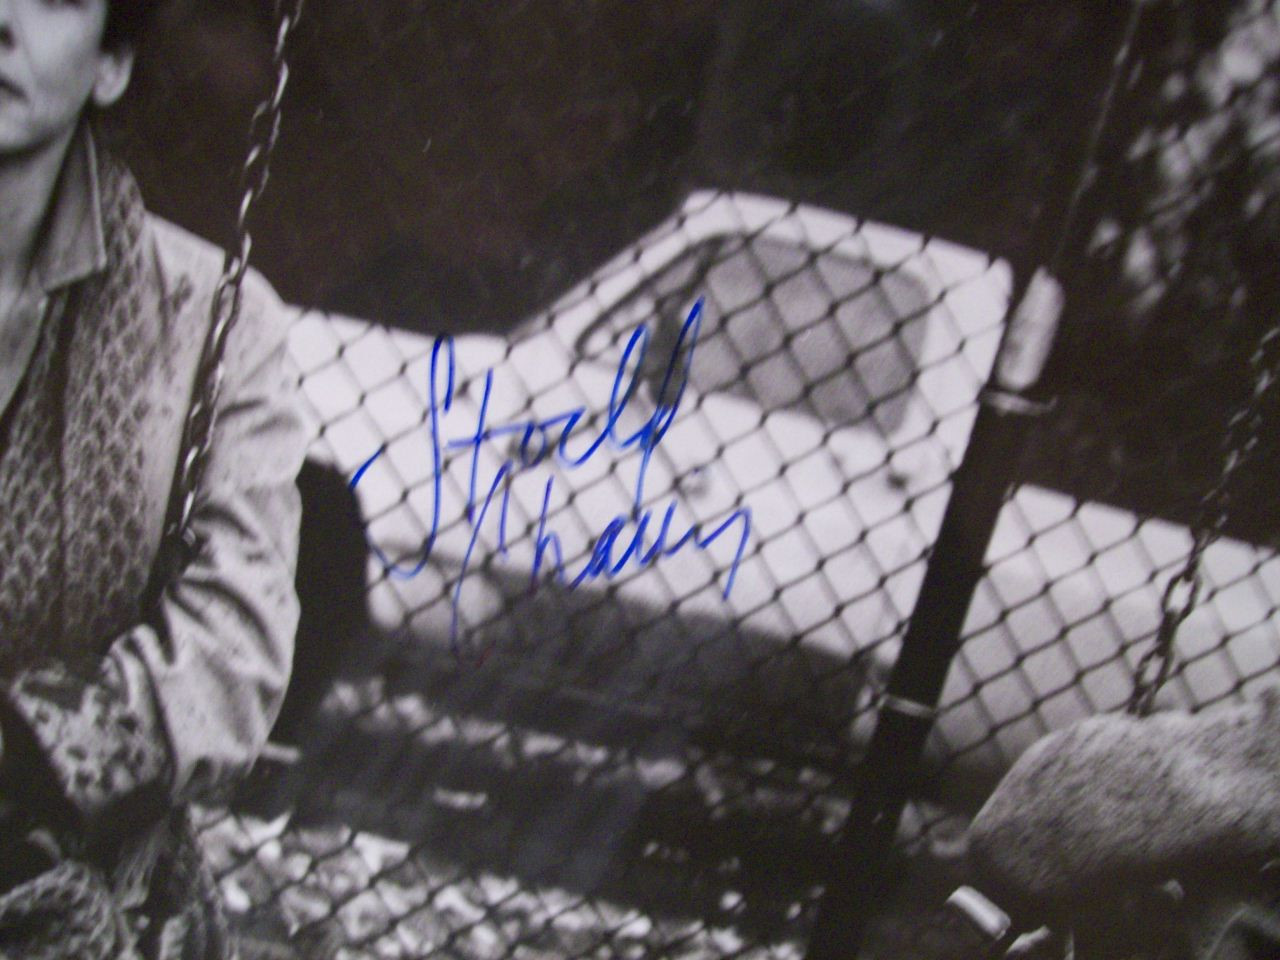 Channing, Stockard Photo Autograph The Room Upstairs